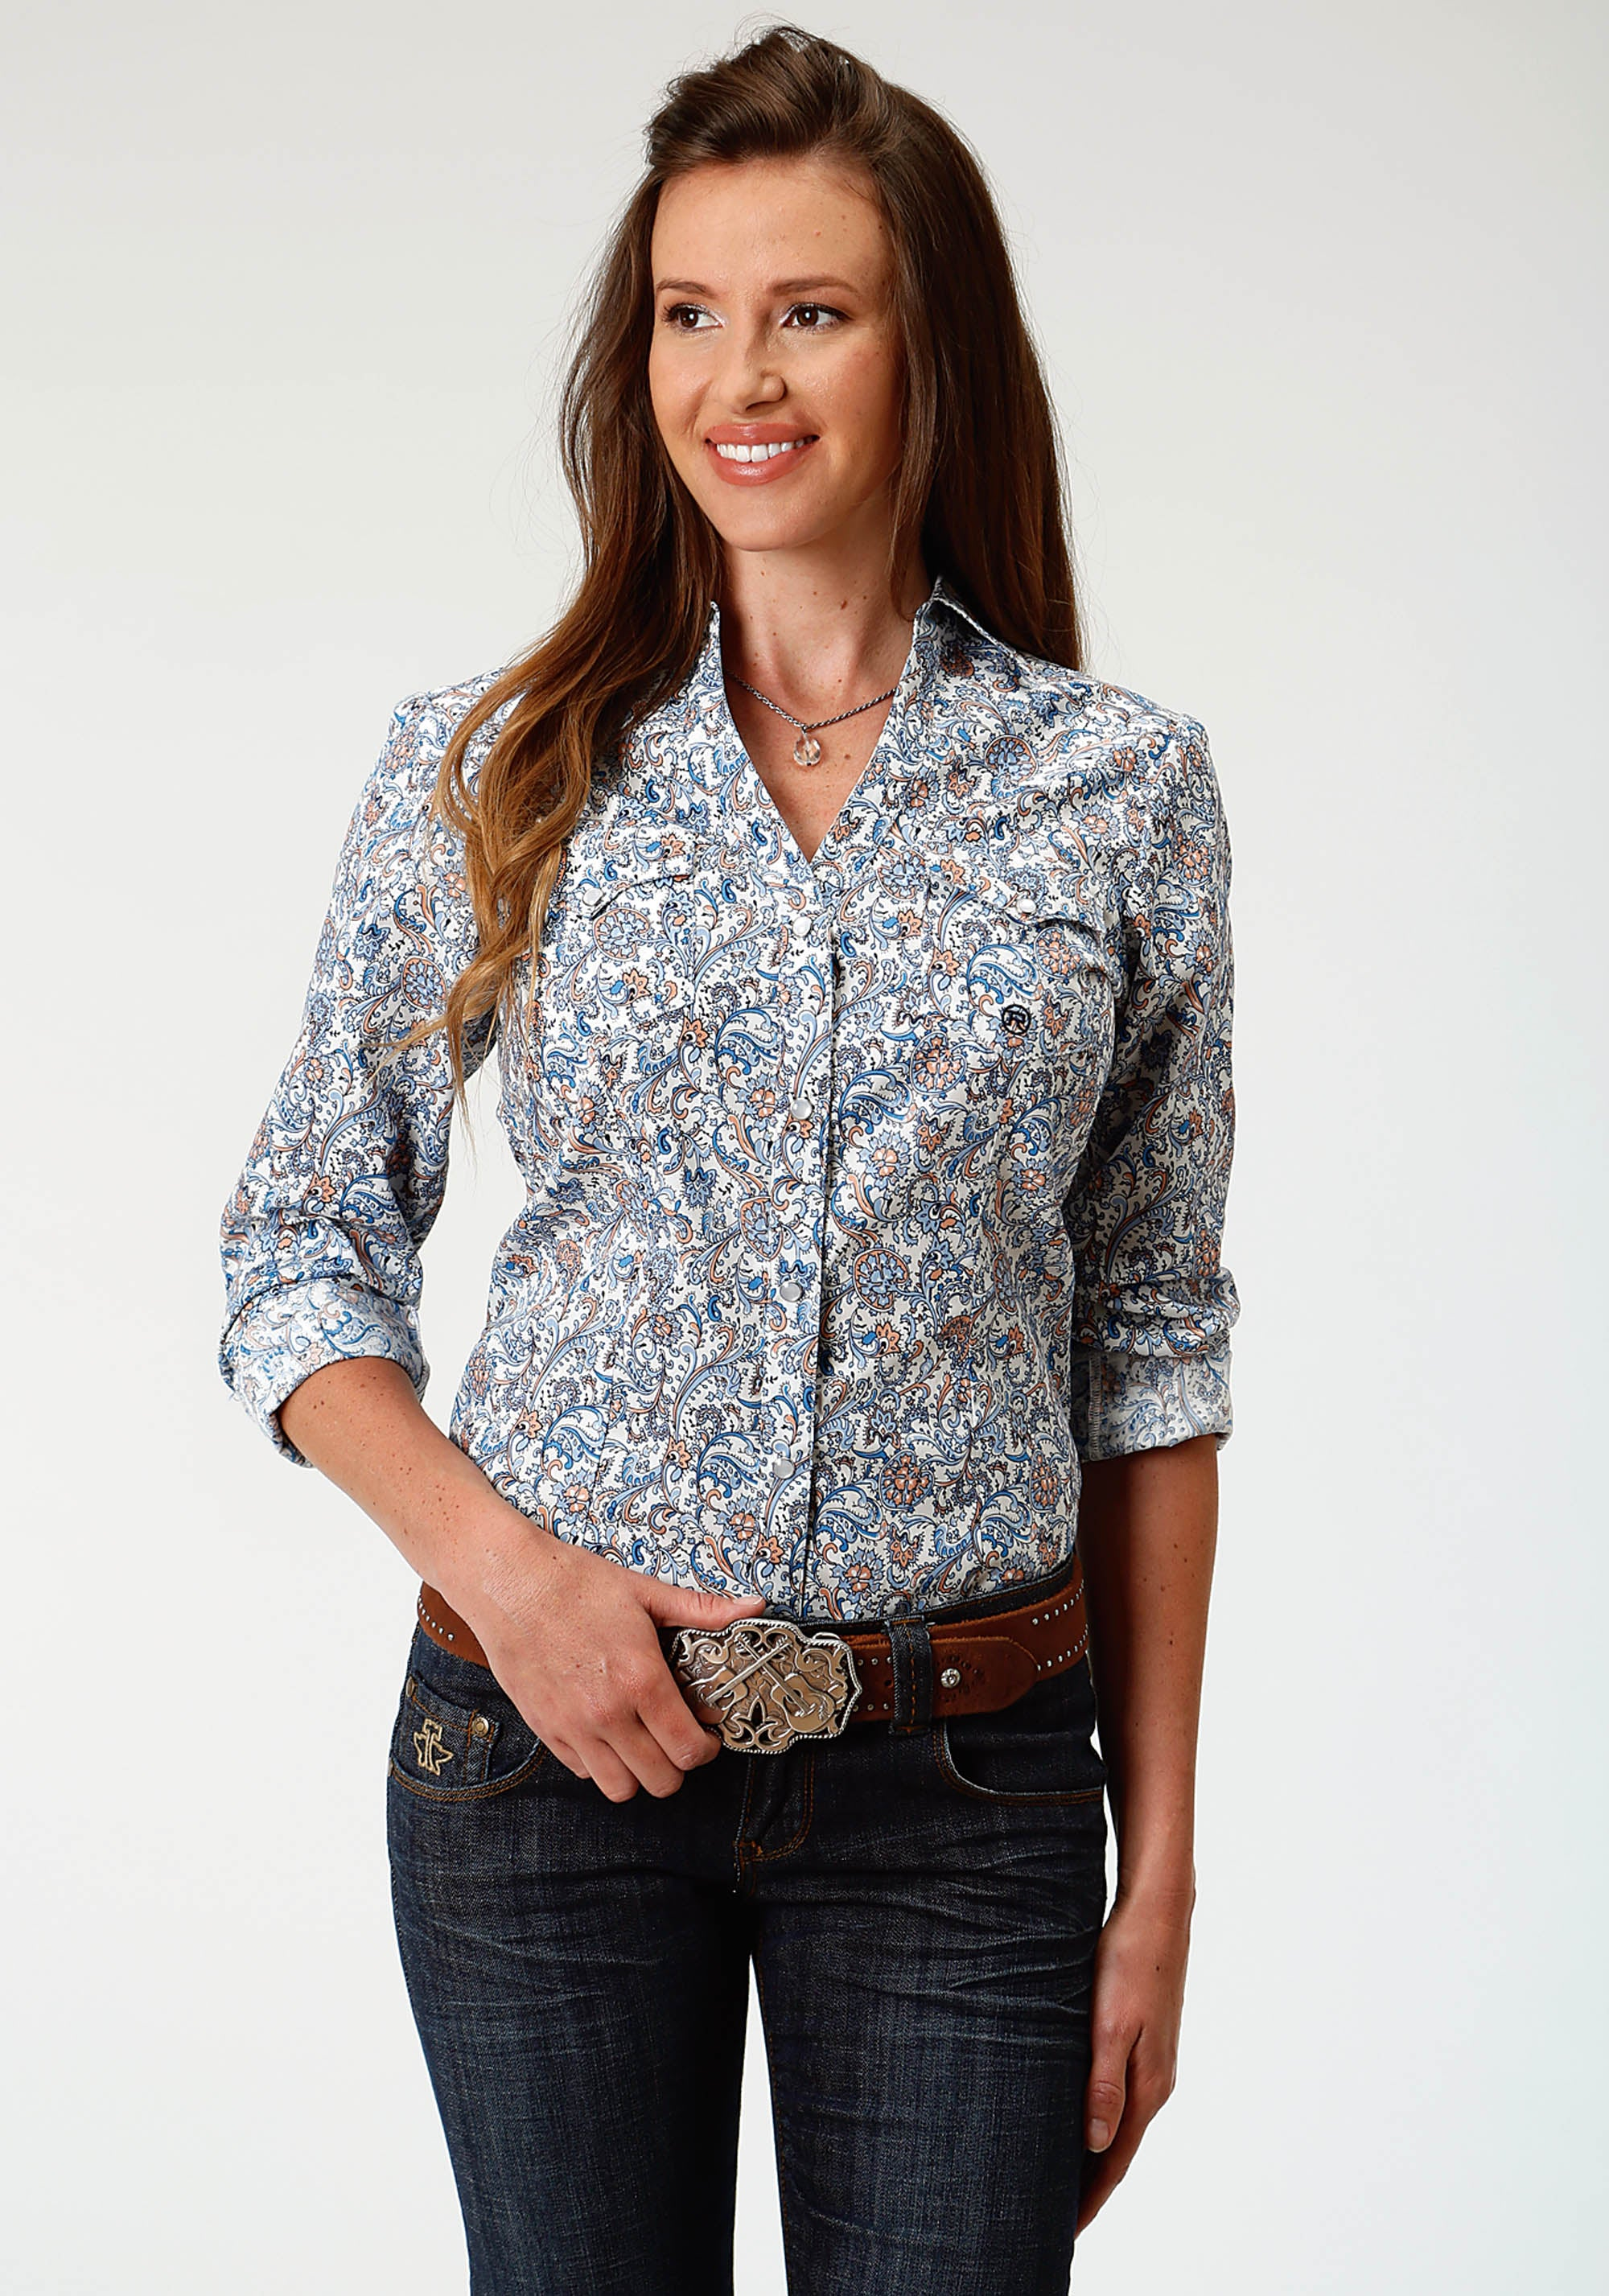 ROPER WOMENS BLUE 3277 SKY PAISLEY LADIES AMARILLO COLLECTION- DAY BREAK LONG SLEEVE